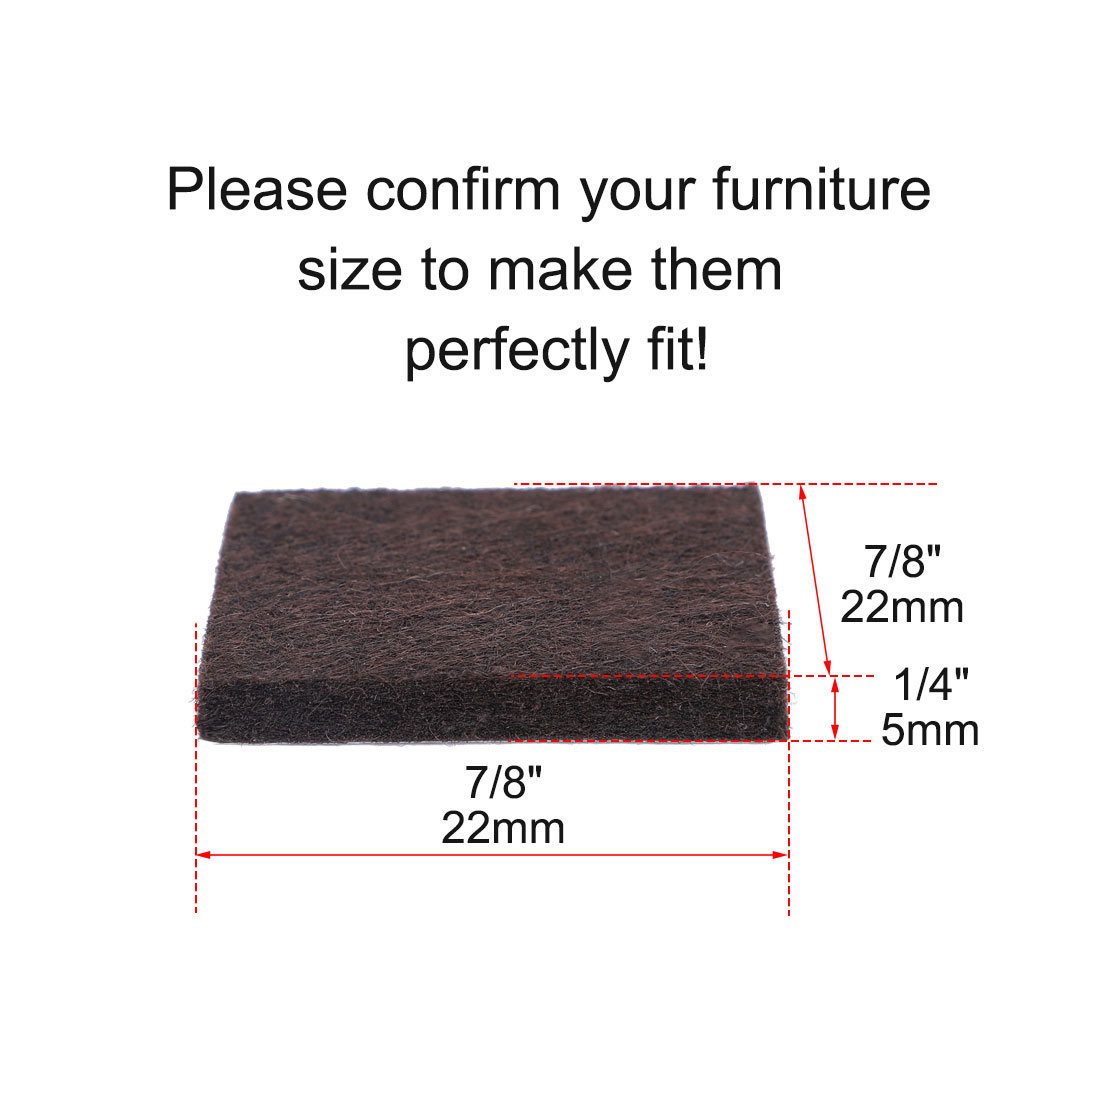 "Felt Furniture Pads Square 7/8"" Self Adhesive Anti-scratch Floor Protector 70pcs - image 4 de 7"